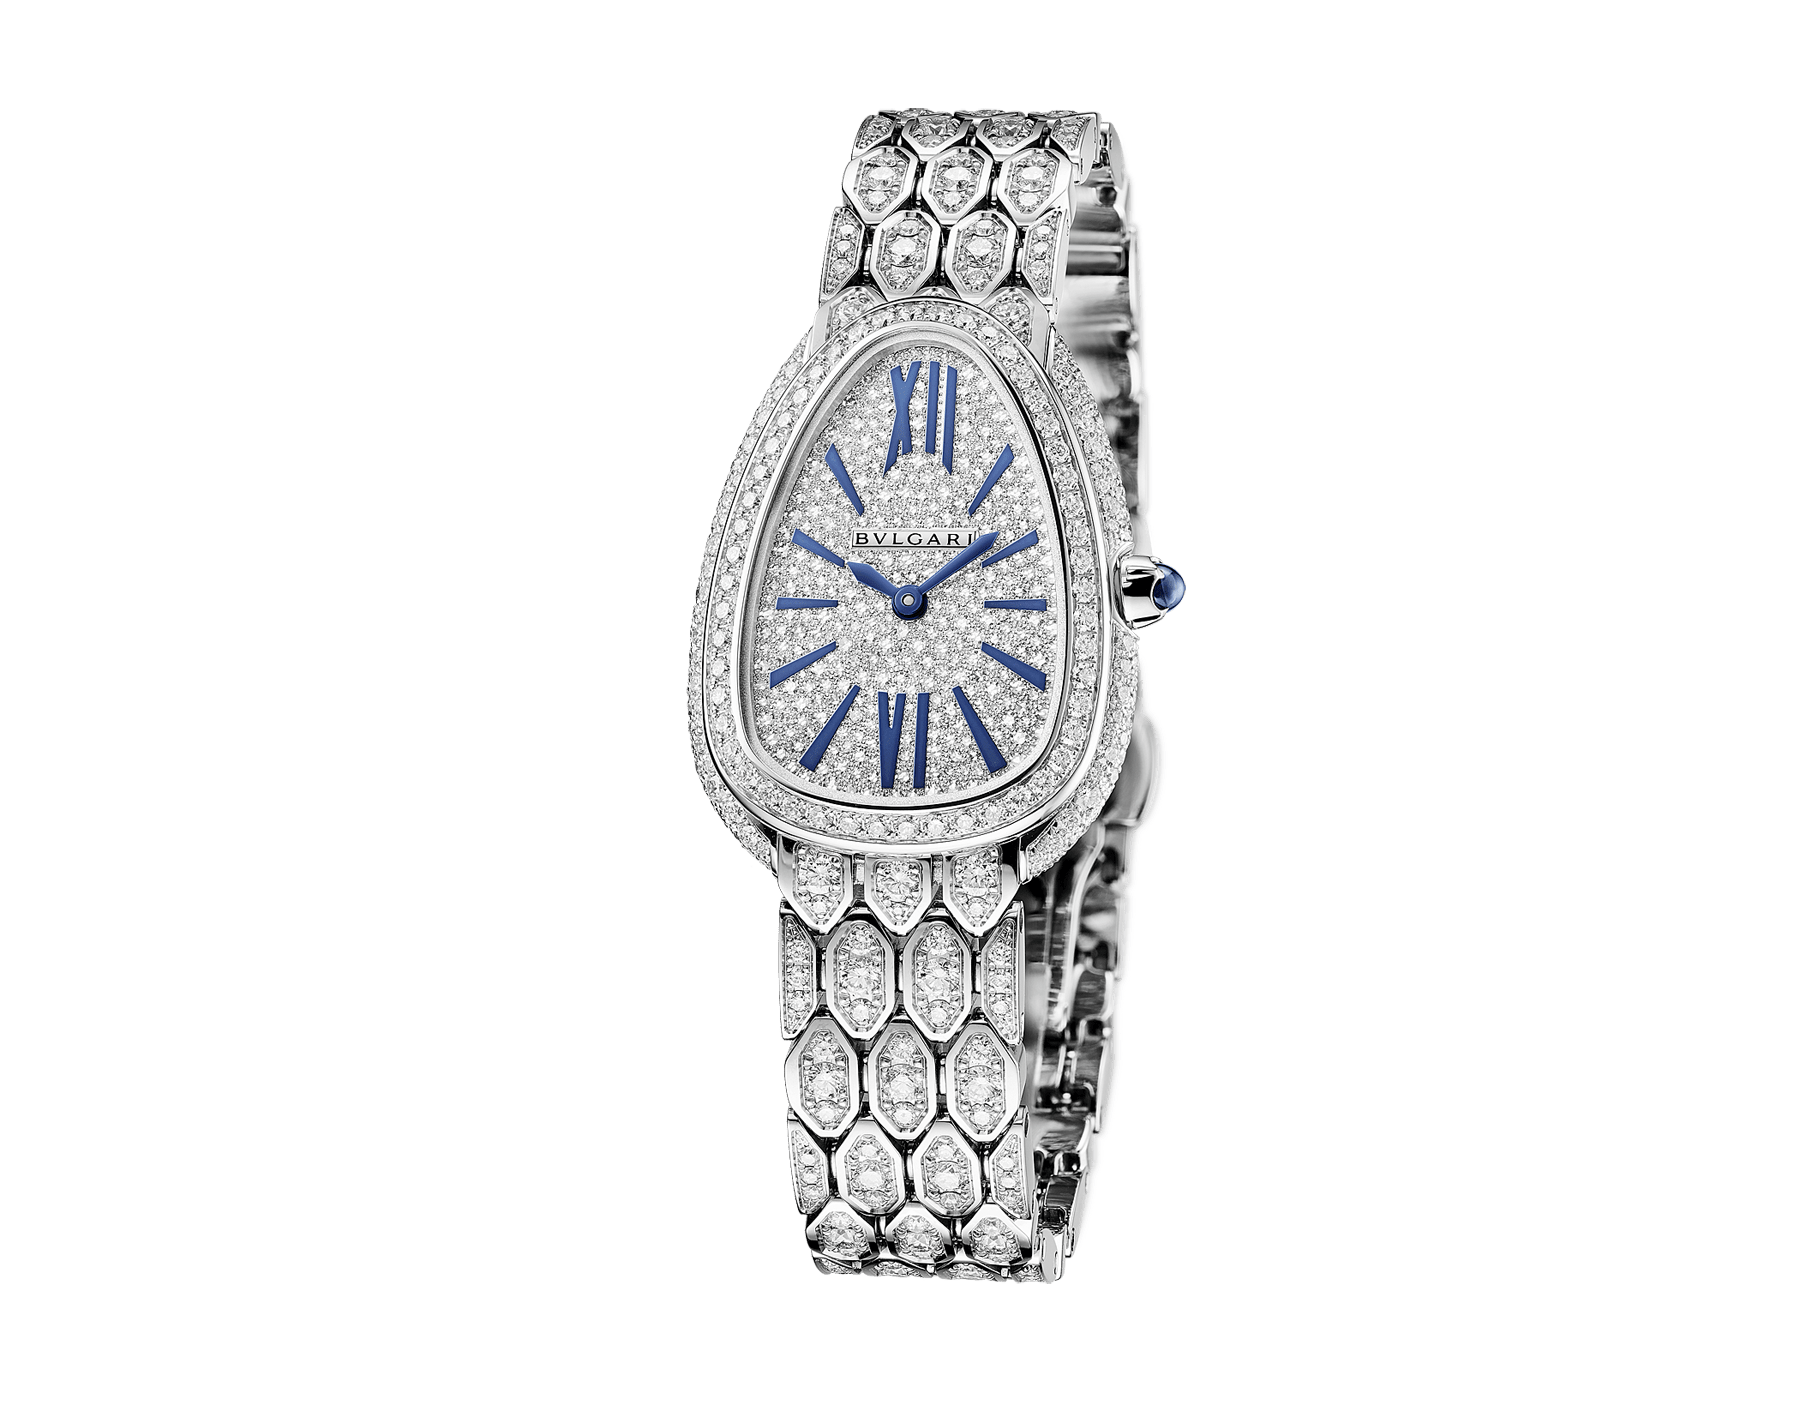 Serpenti Seduttori watch with 18 kt white gold case and bracelet both set with diamonds, full pavé dial and blue hands and indexes 103159 image 2